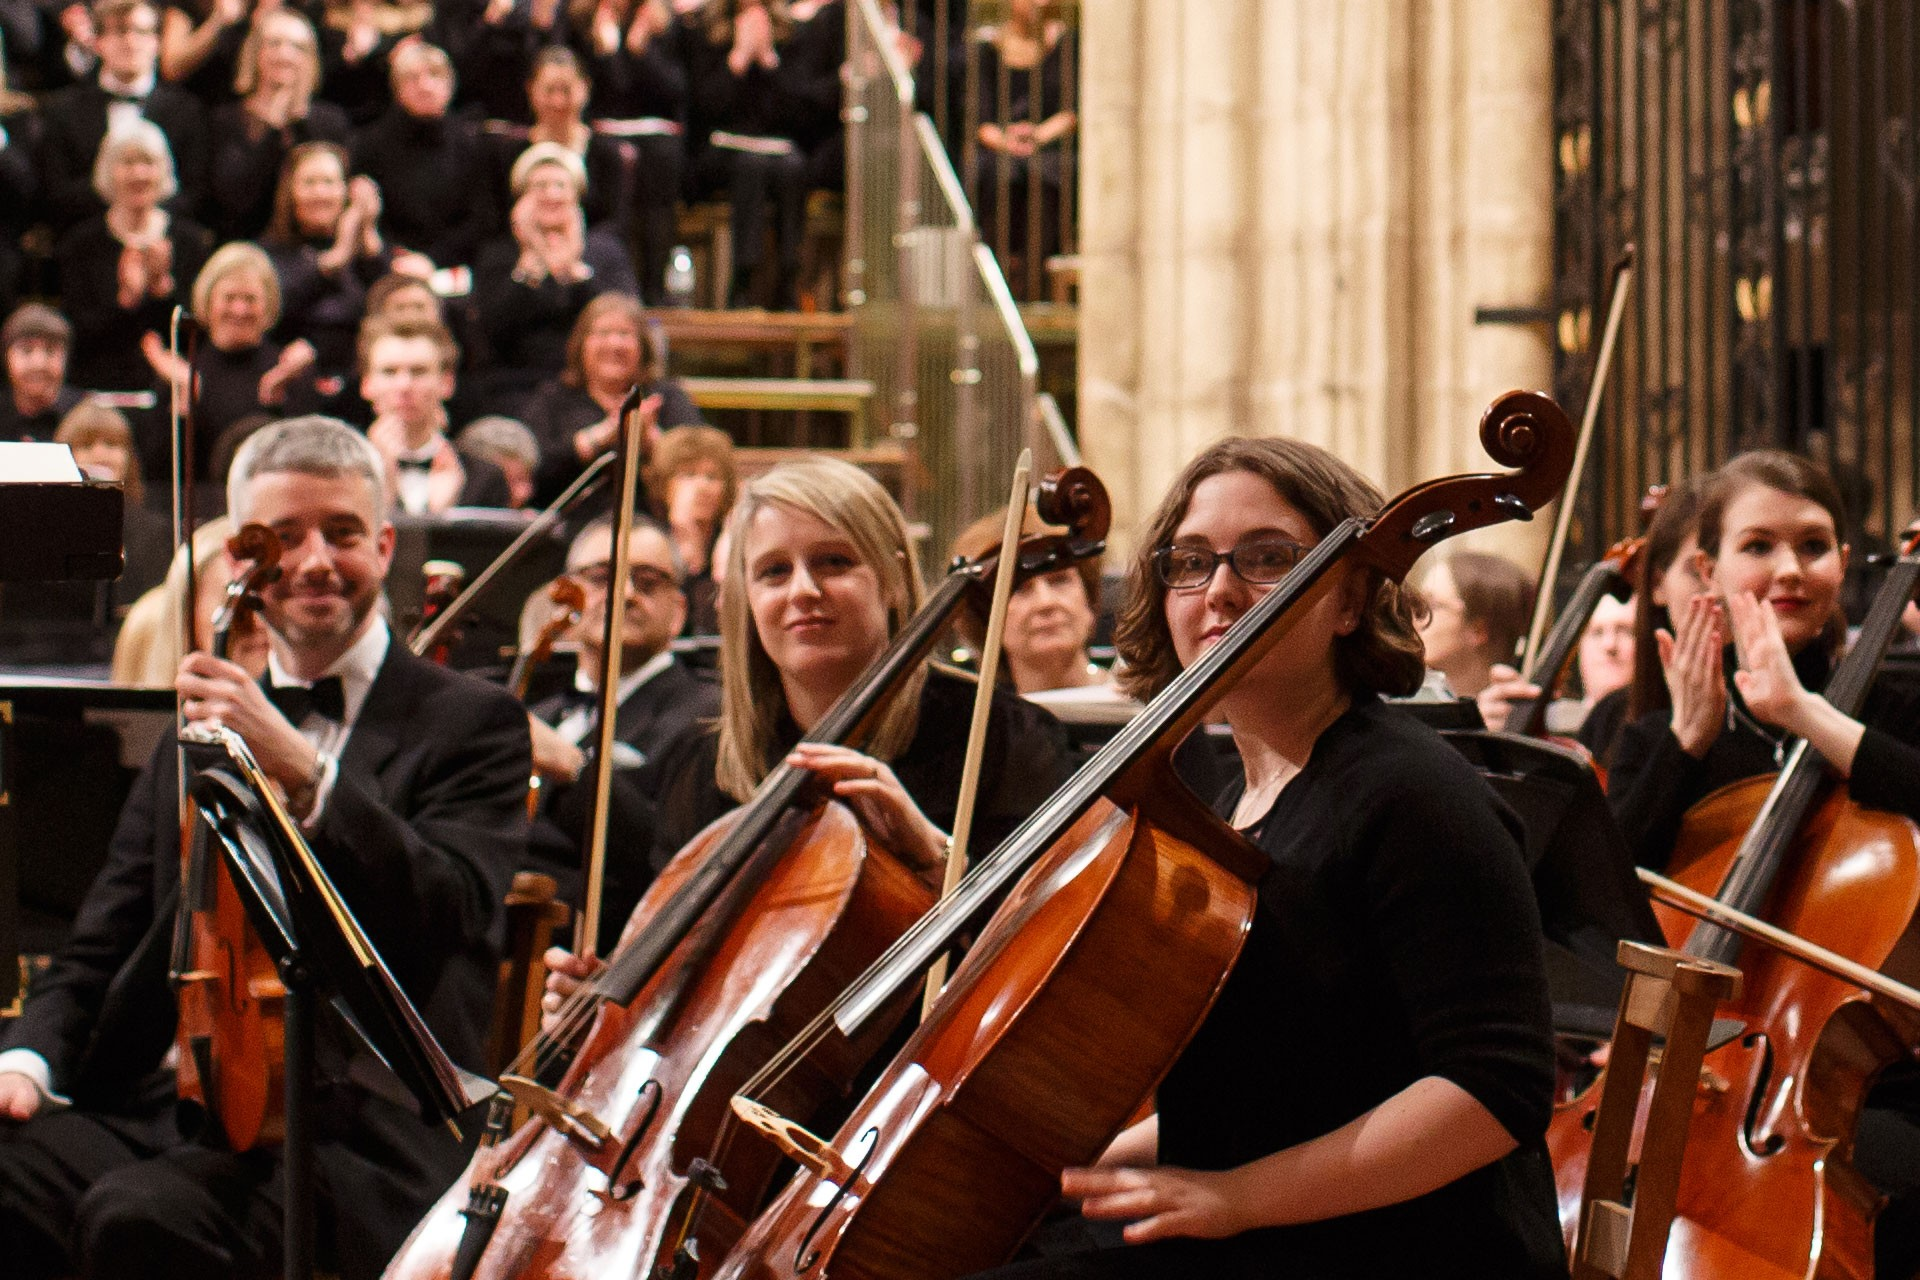 University of Kent Chorus and Symphony orchestra musicians in Canterbury Cathedral